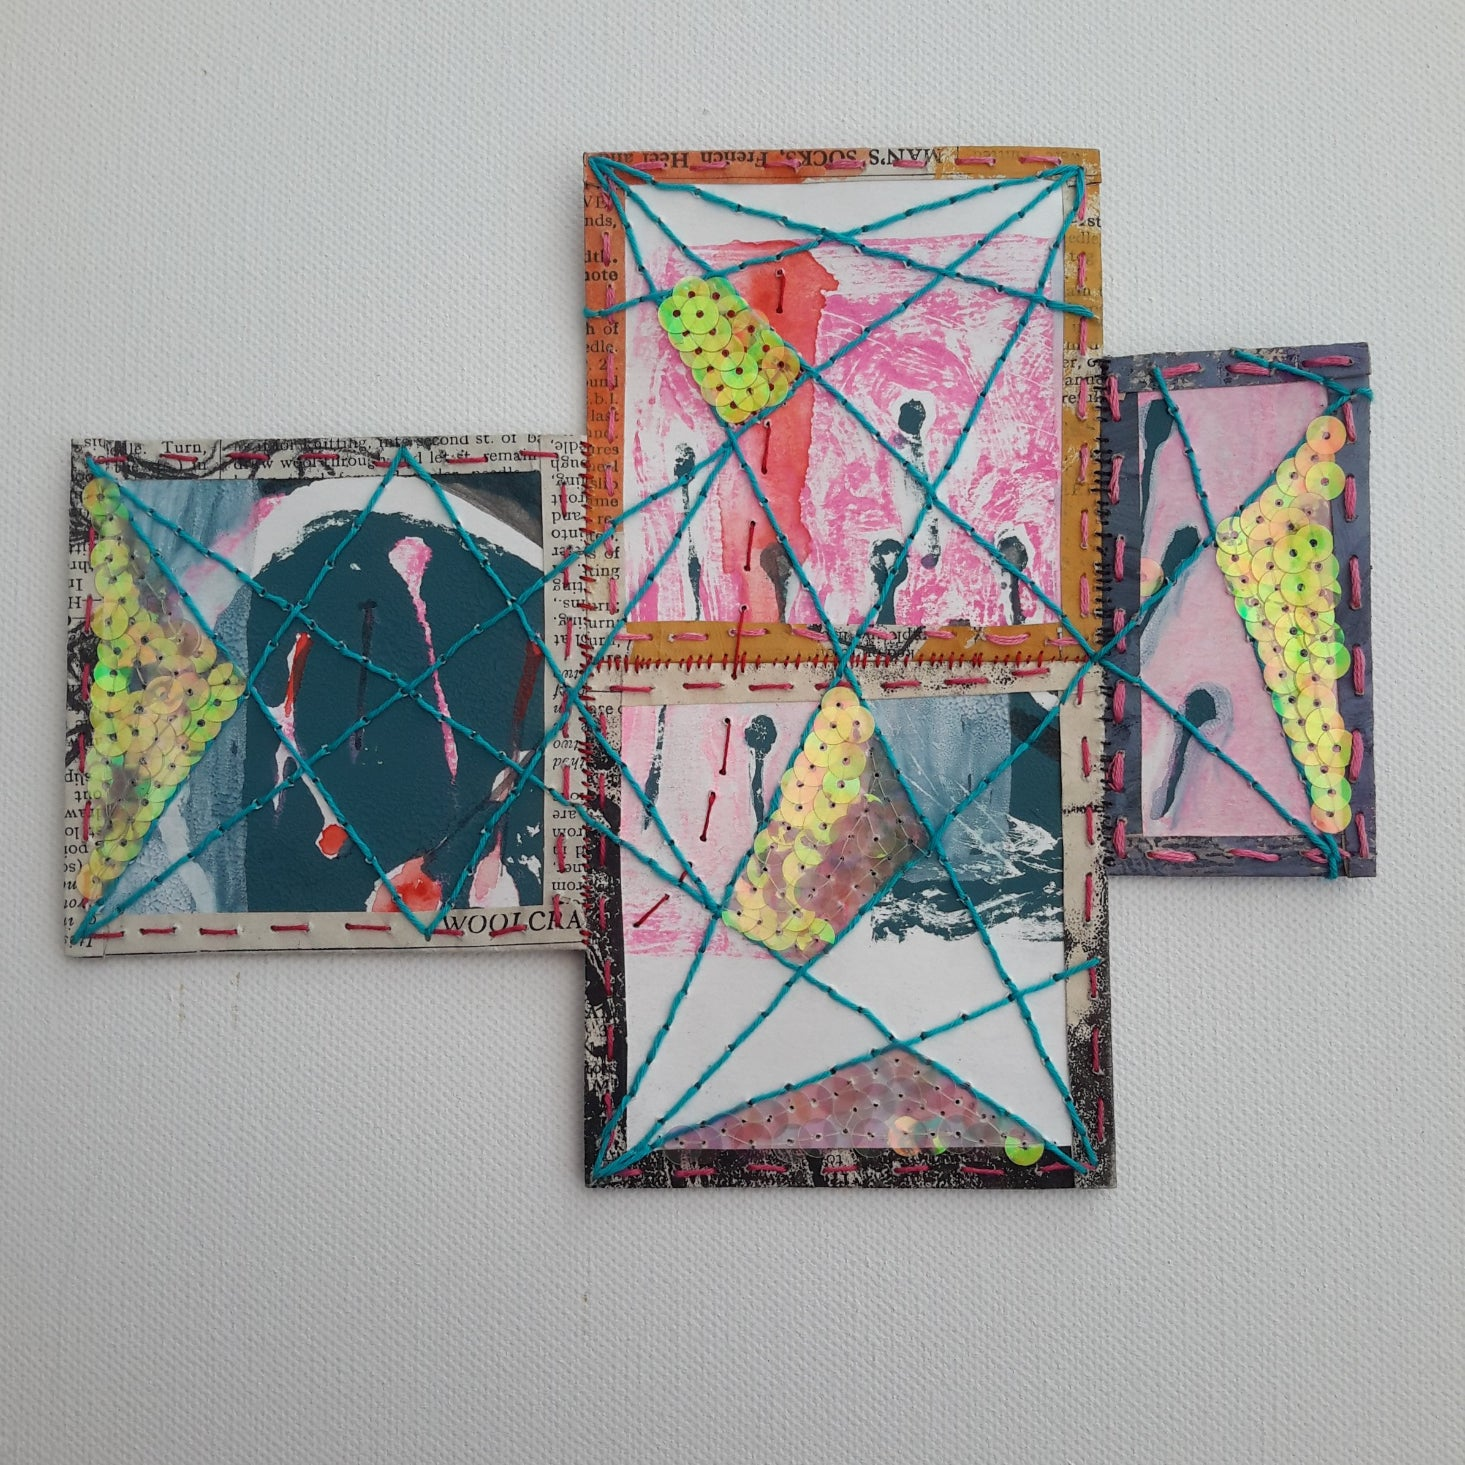 Abstract Textile Ar Patchwork by Julia Laing